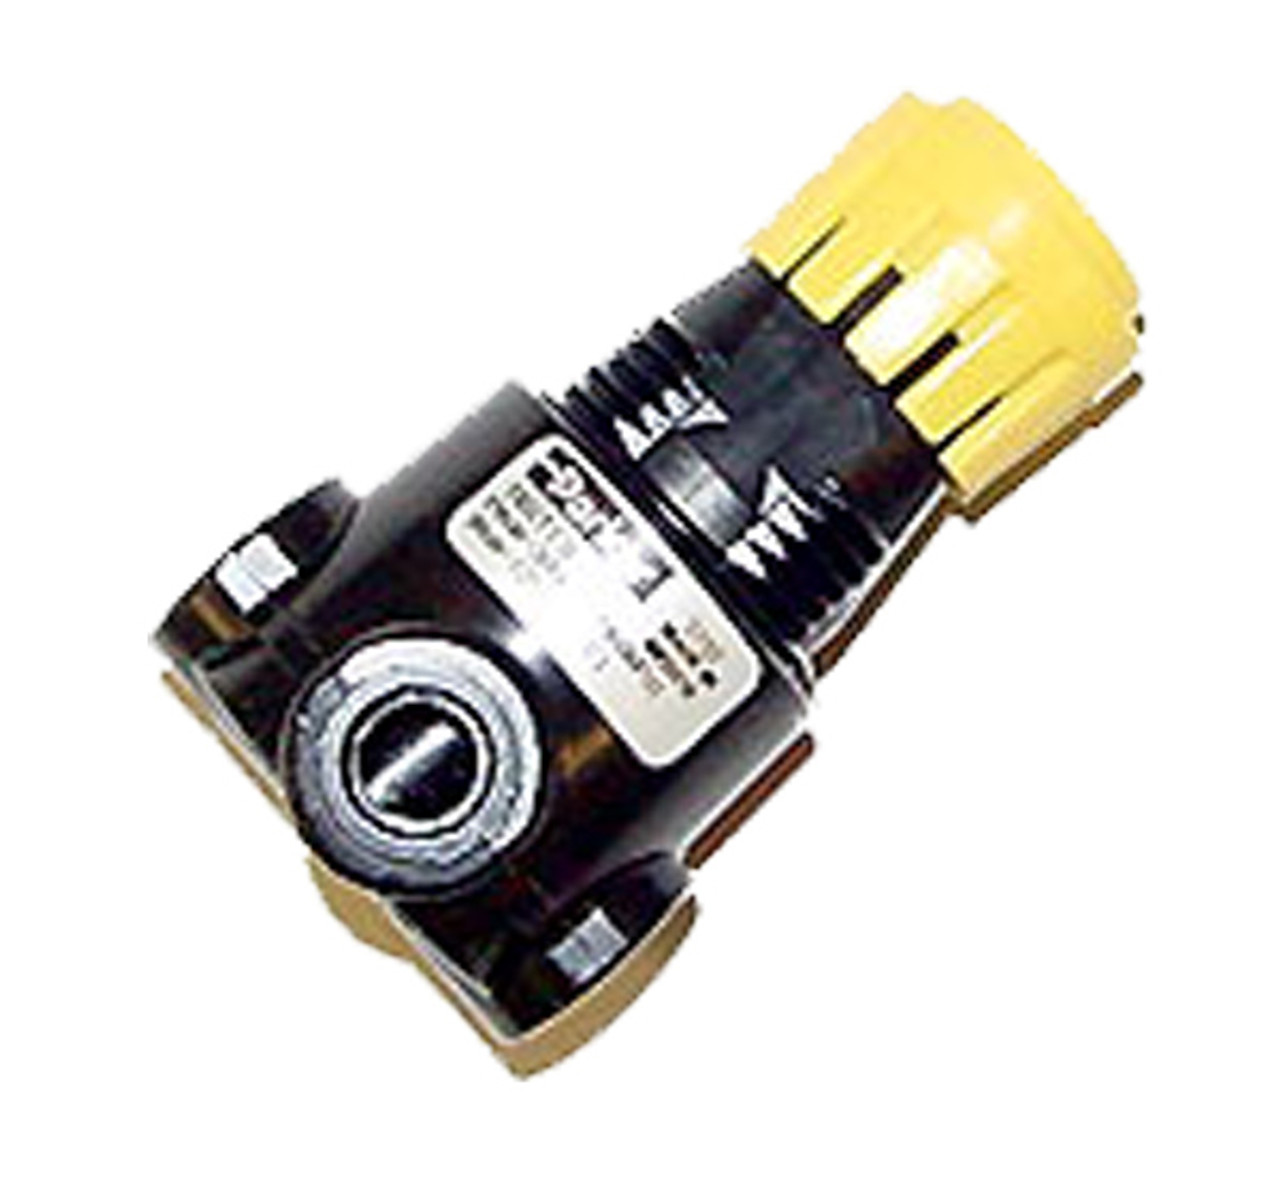 P14113 - Parker Air Pressure Regulator